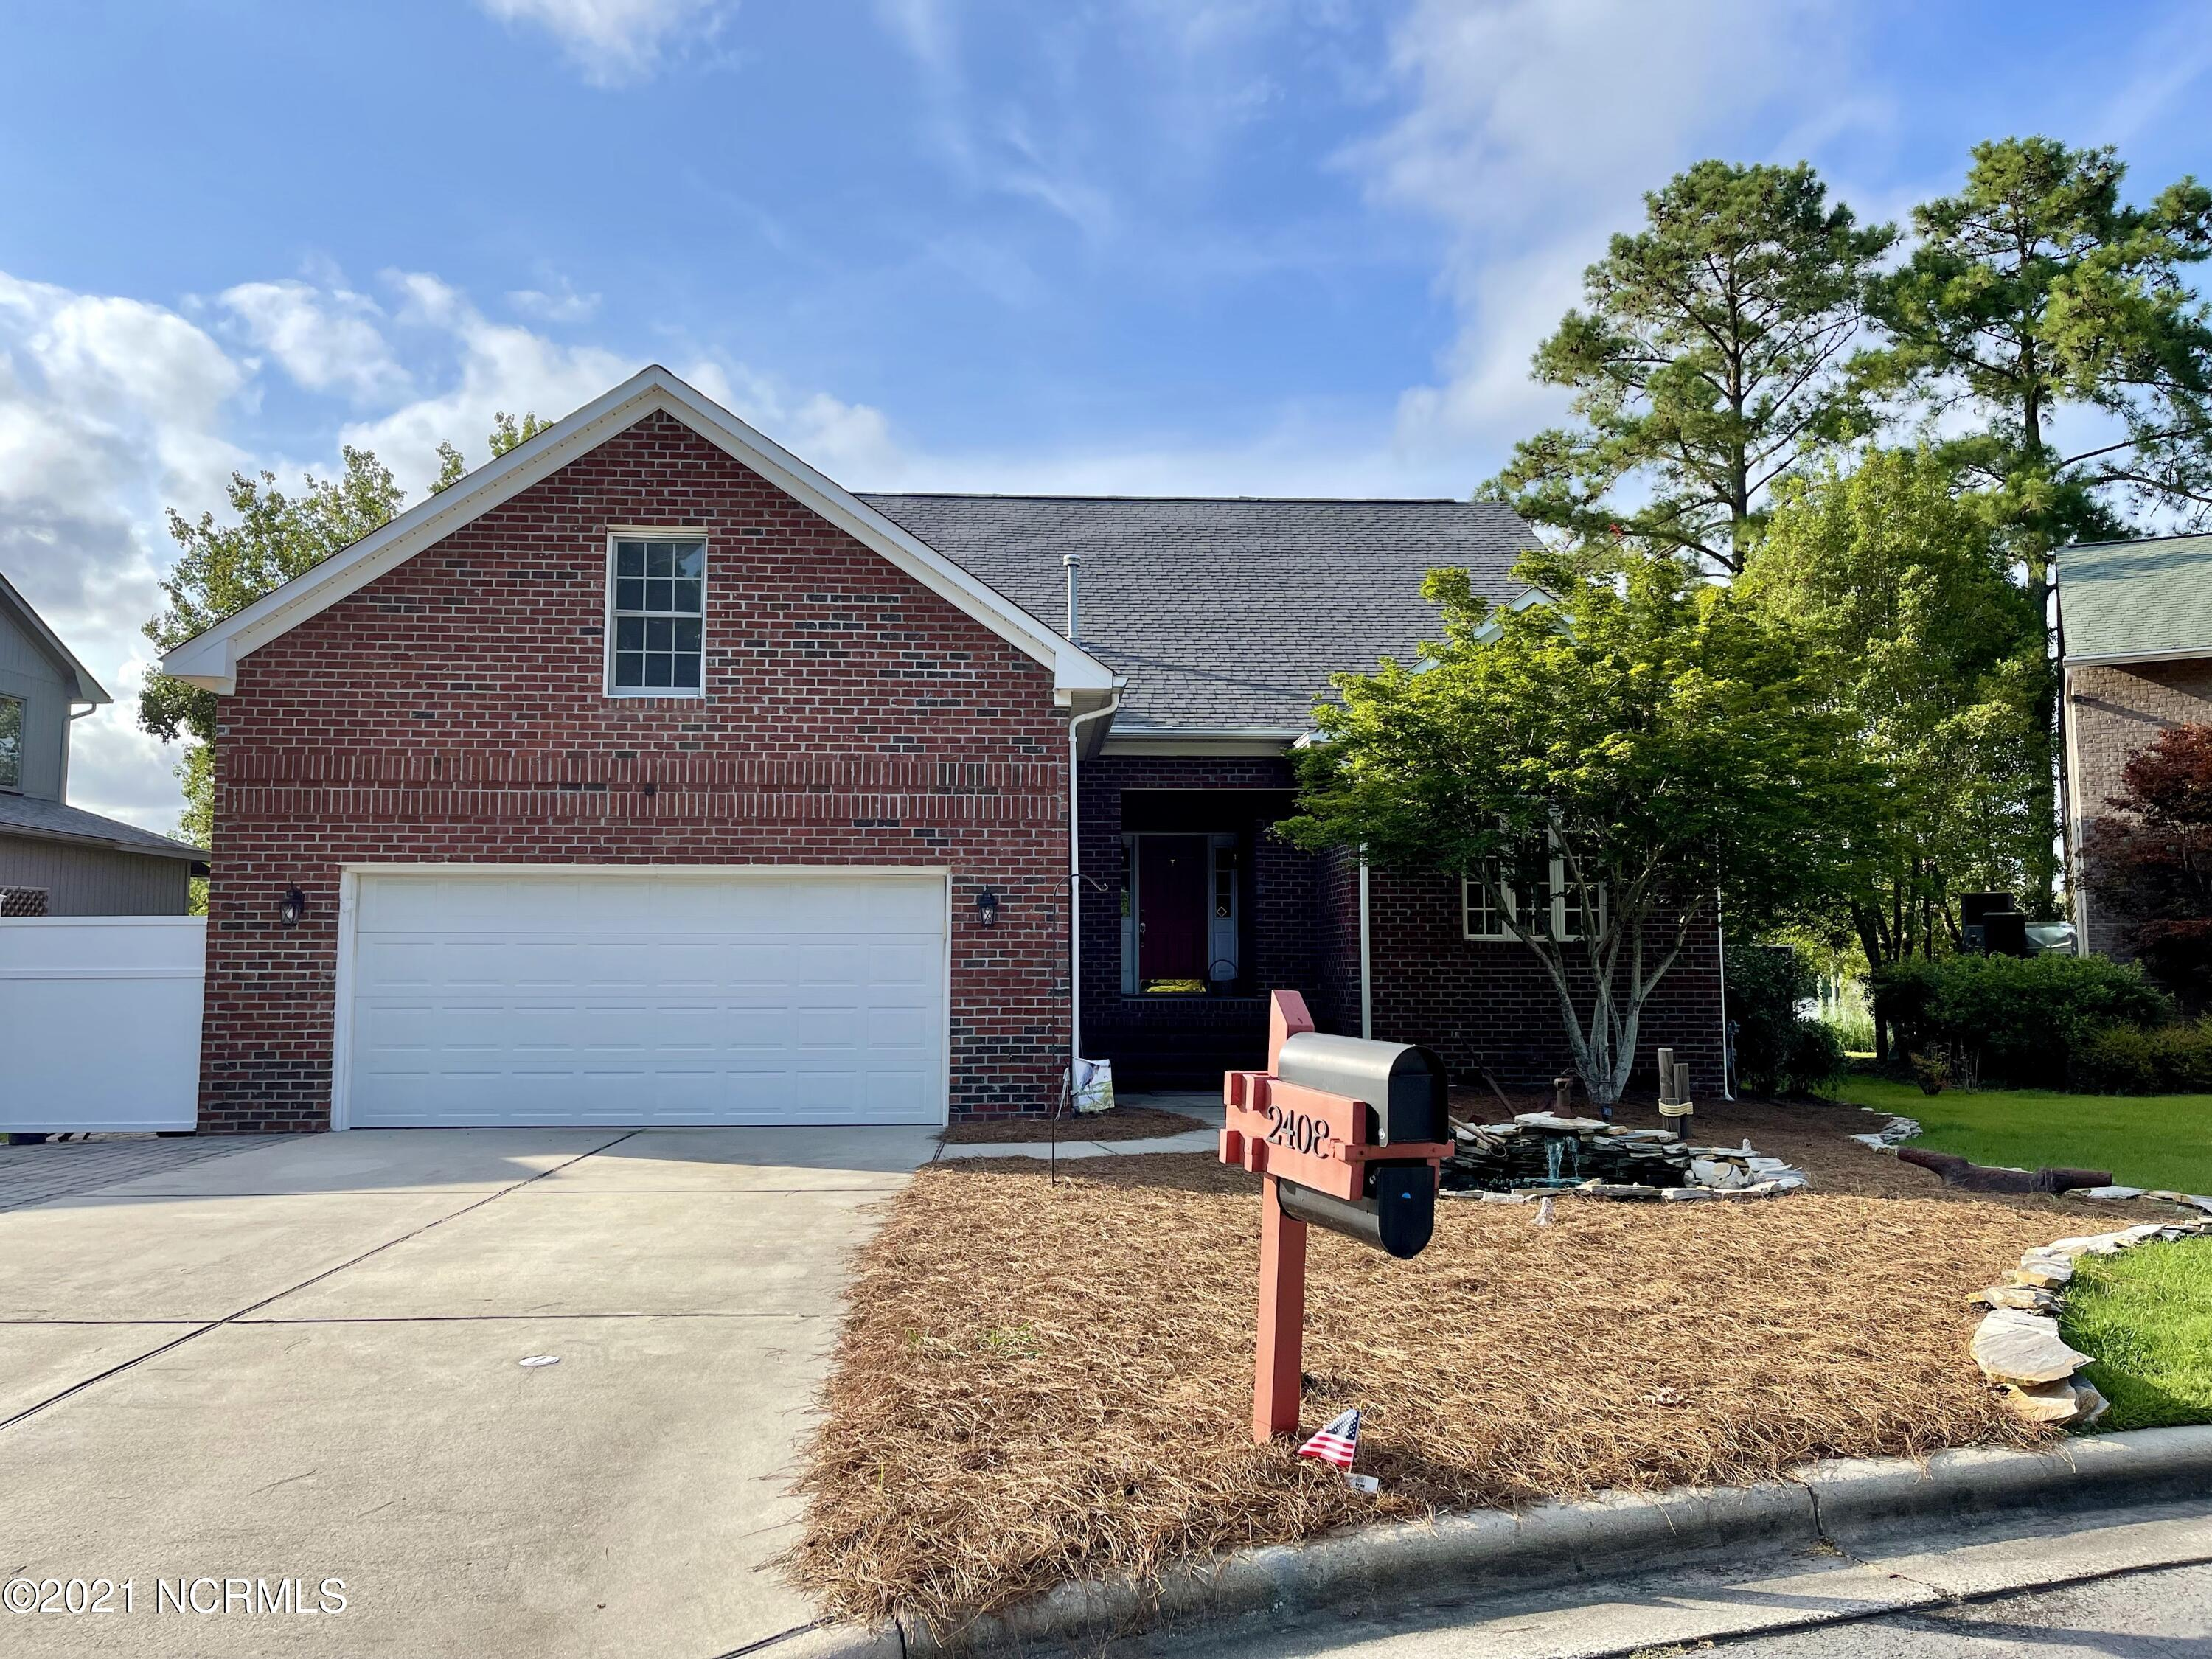 2408 Turtle Bay Drive, New Bern, North Carolina 28562, 3 Bedrooms Bedrooms, 7 Rooms Rooms,3 BathroomsBathrooms,Single family residence,For sale,Turtle Bay,100282997